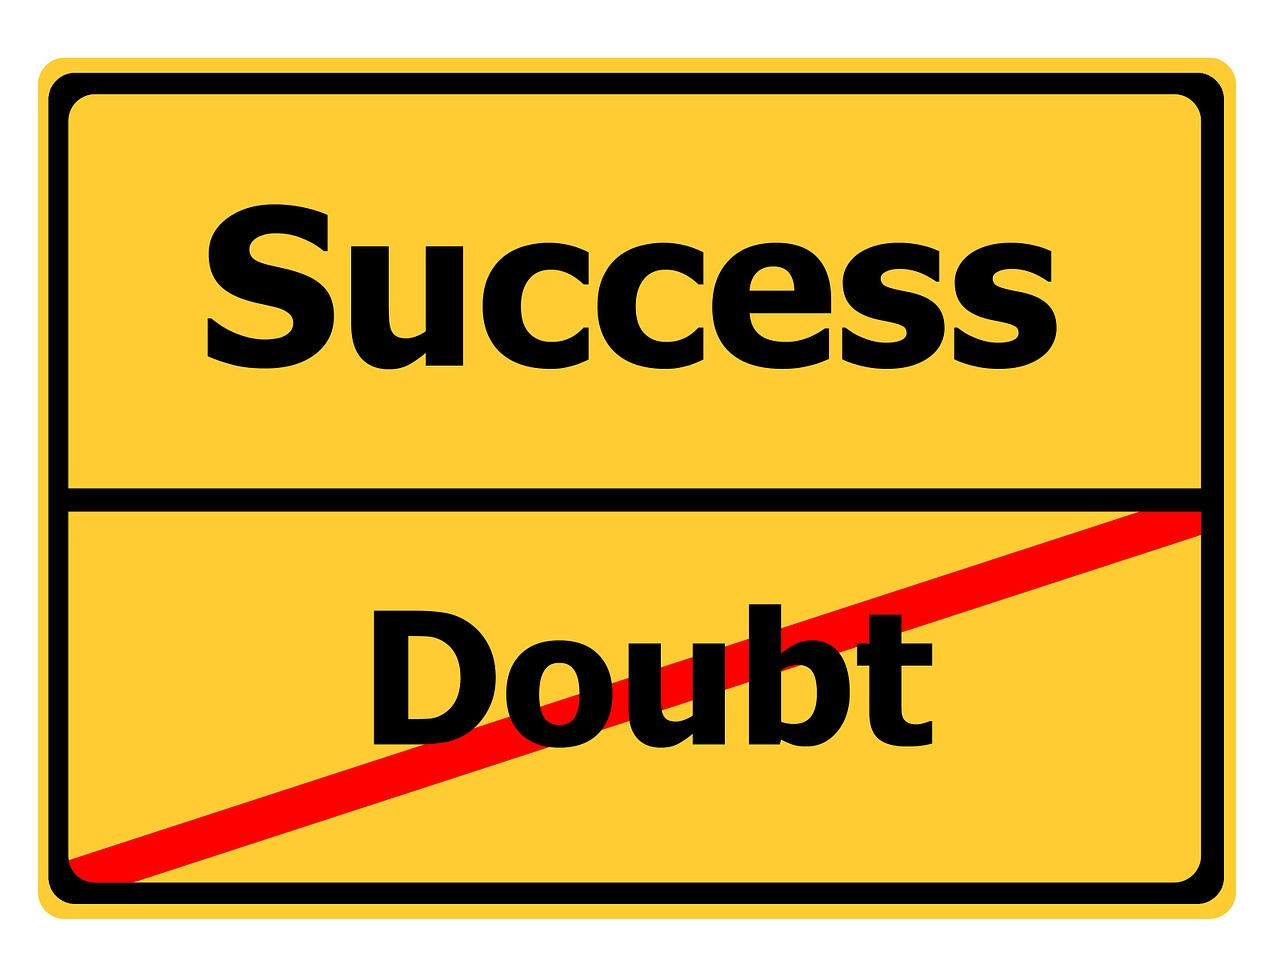 How to Nudge Doubt Away